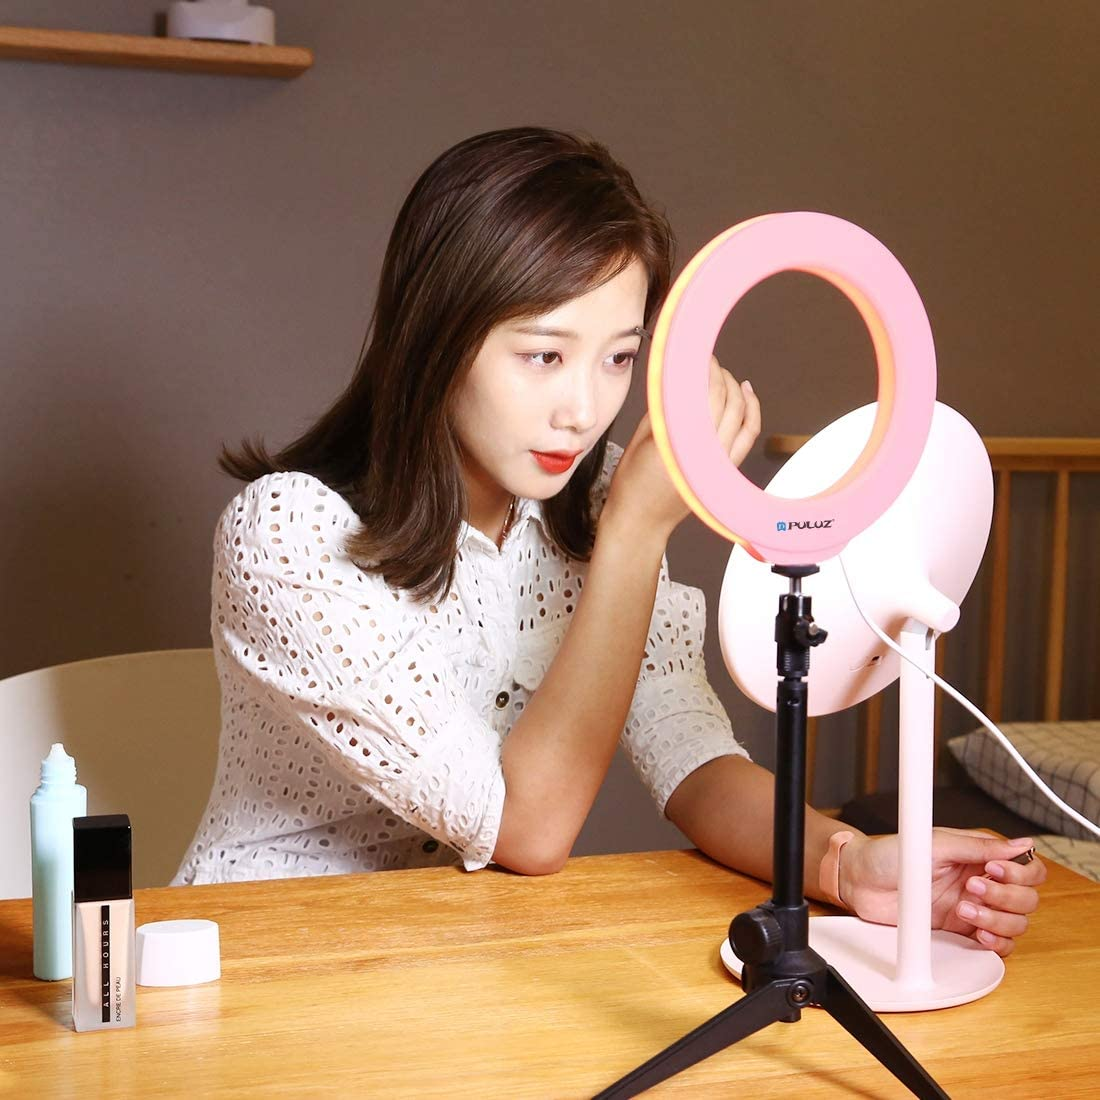 Black Color : Pink MEETBM ZIMO,6.2 inch 16cm USB 3 Modes Dimmable LED Ring Vlogging Photography Video Lights with Cold Shoe Tripod Ball Head